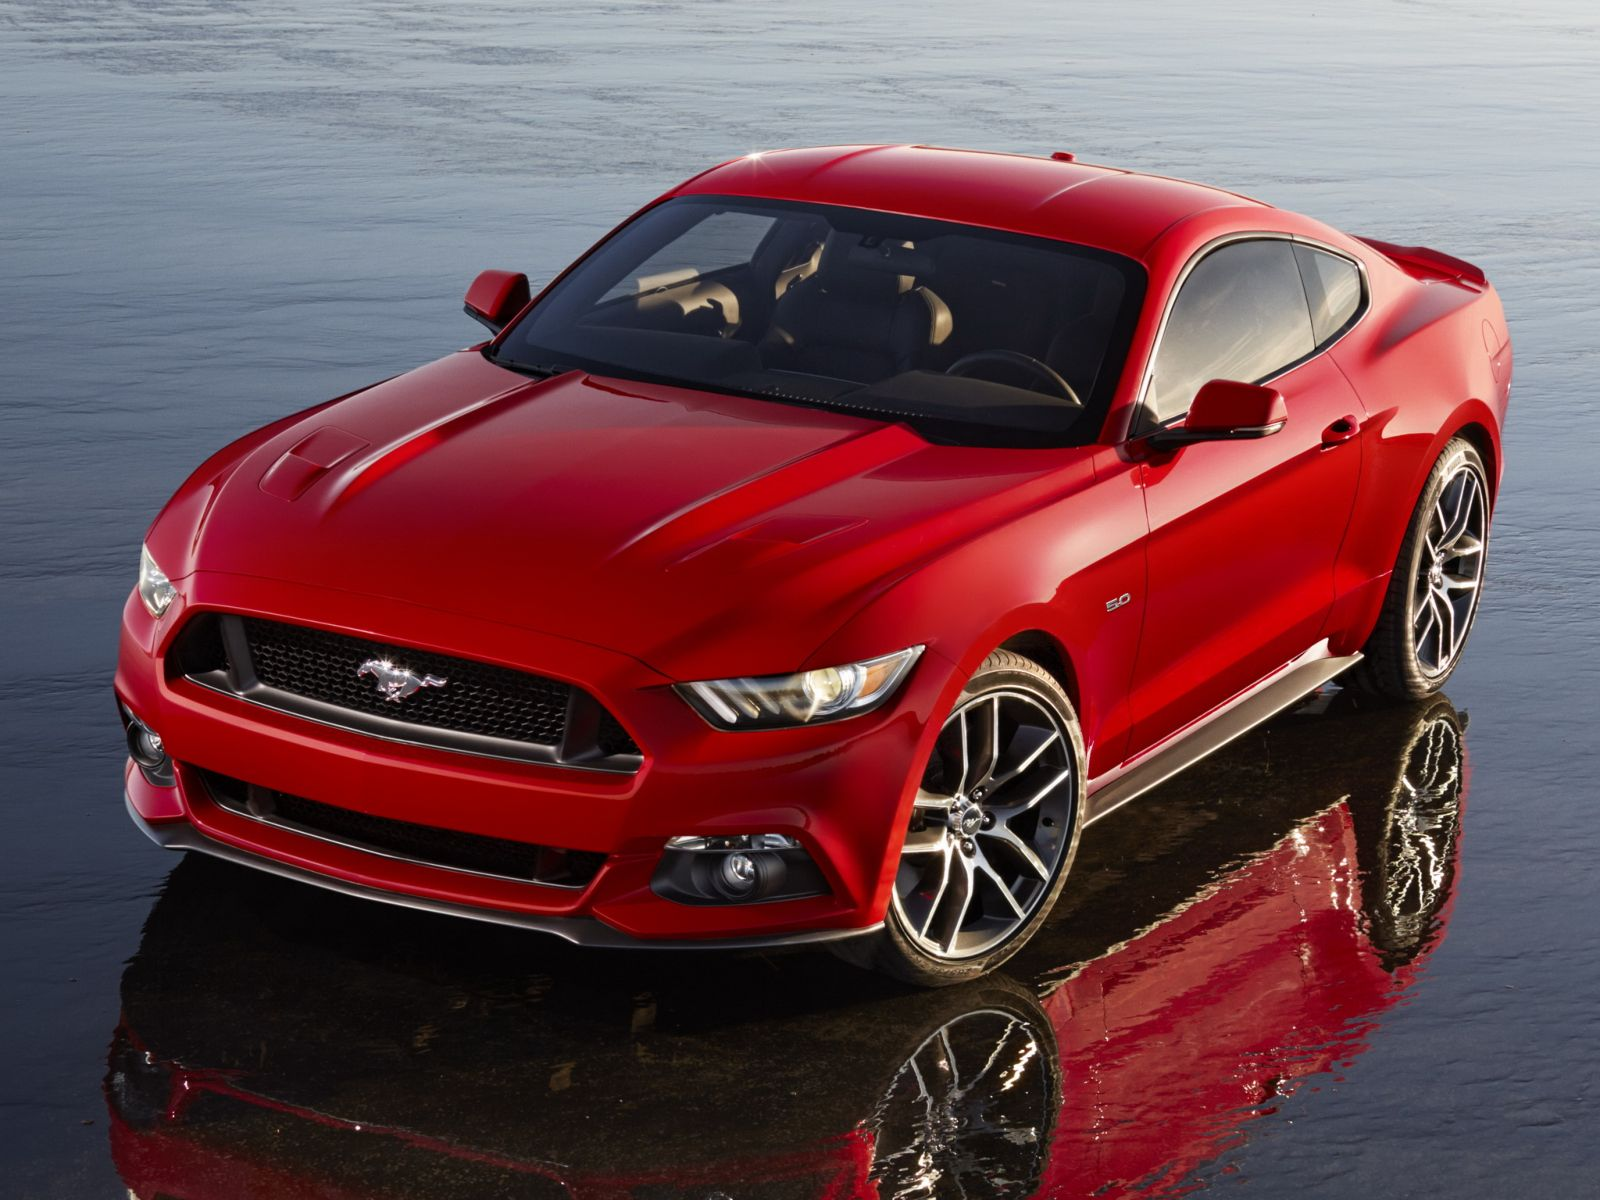 Nouvelle Ford Mustang : officielle !